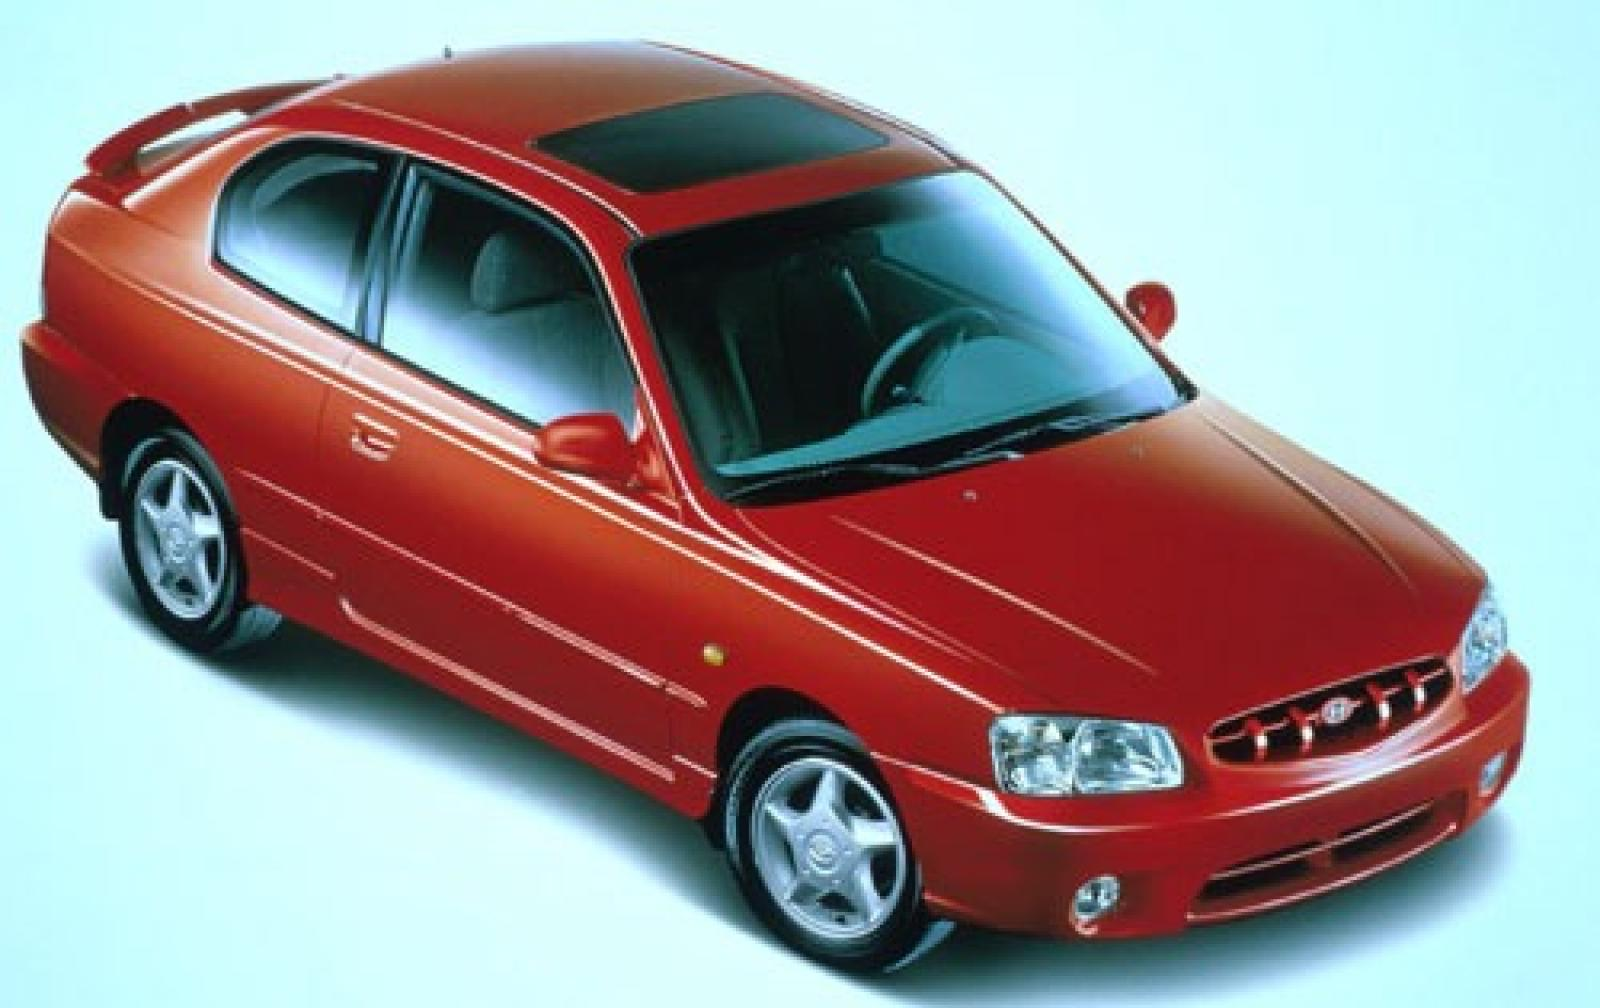 Hyundai accent 2002 manual! Youtube.